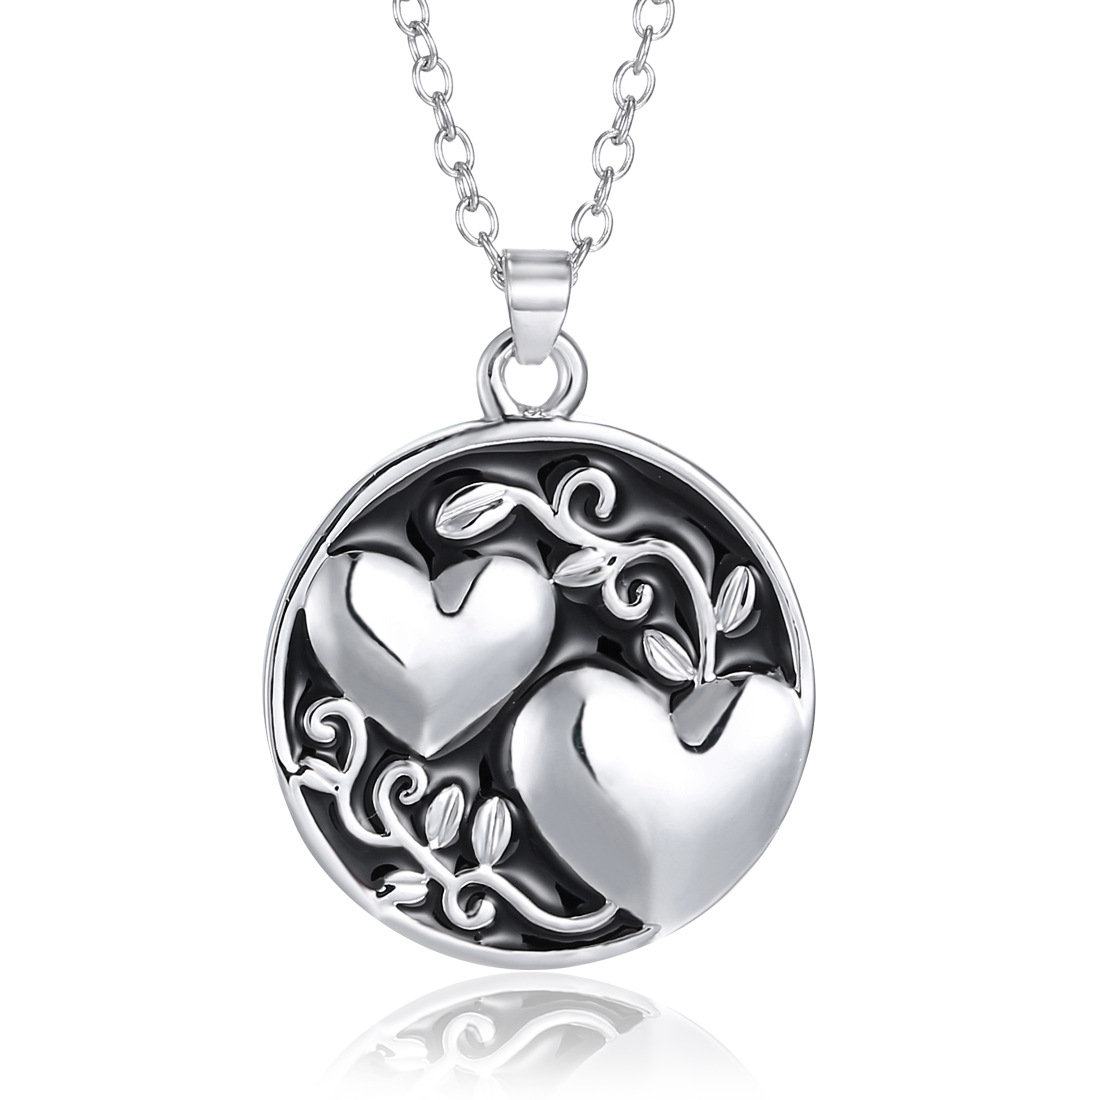 Trendy Silver Heart Round Shaped Engraved Letter Pendant Necklace Gift for Women